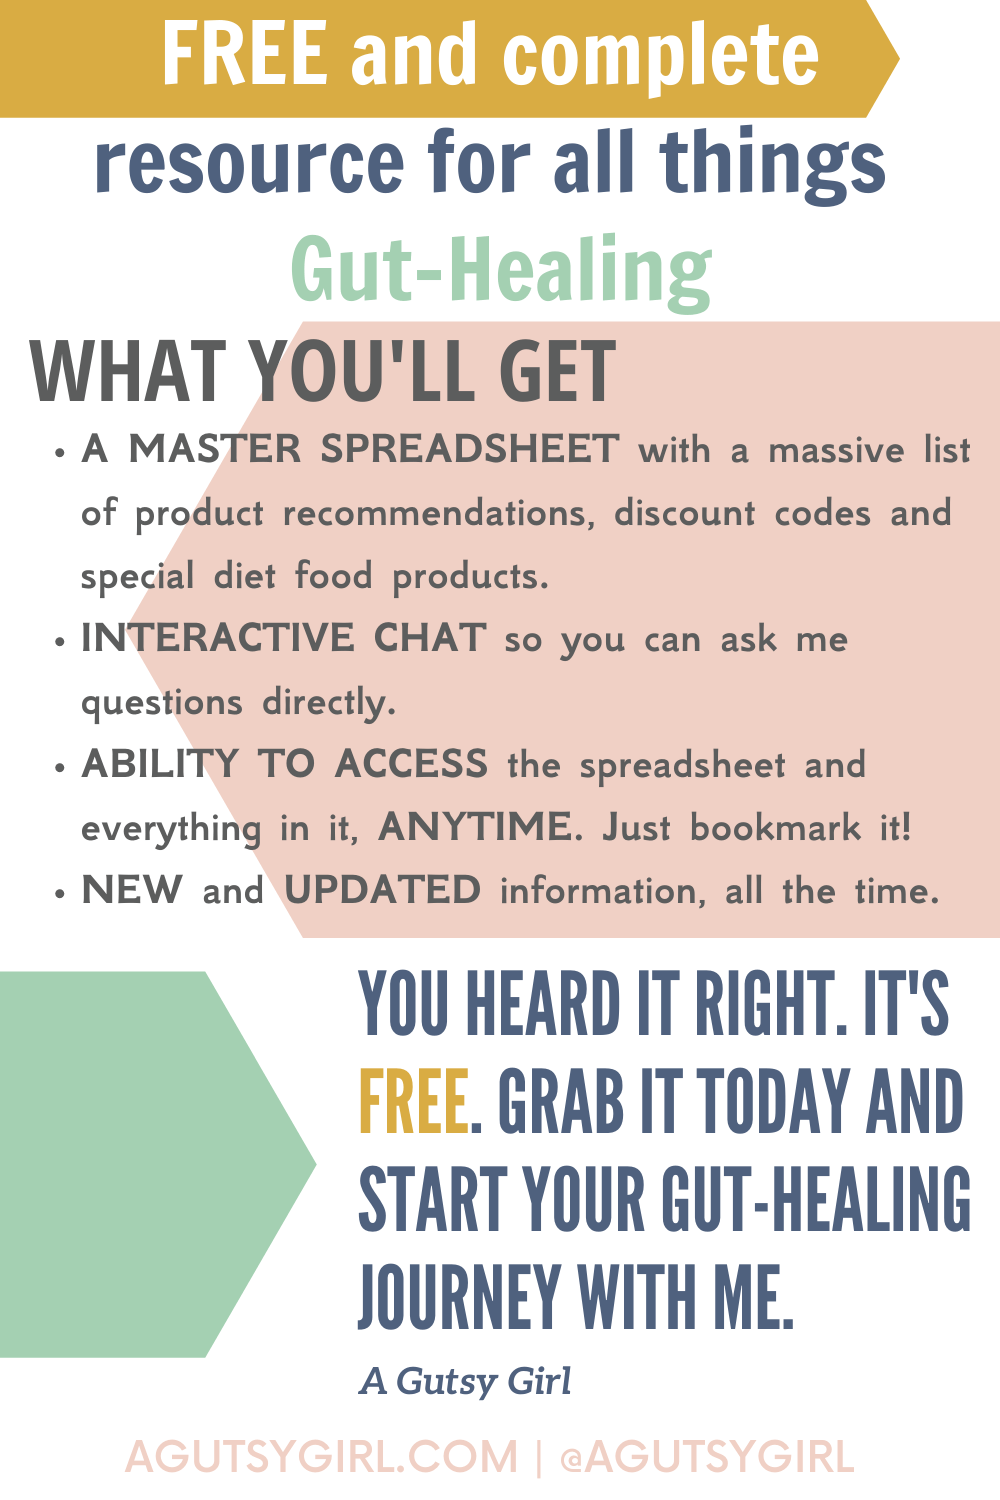 Free 21-day gut healing inspiration journey agutsygirl.com #guthealth #guthealing #irritablebowelsyndrome